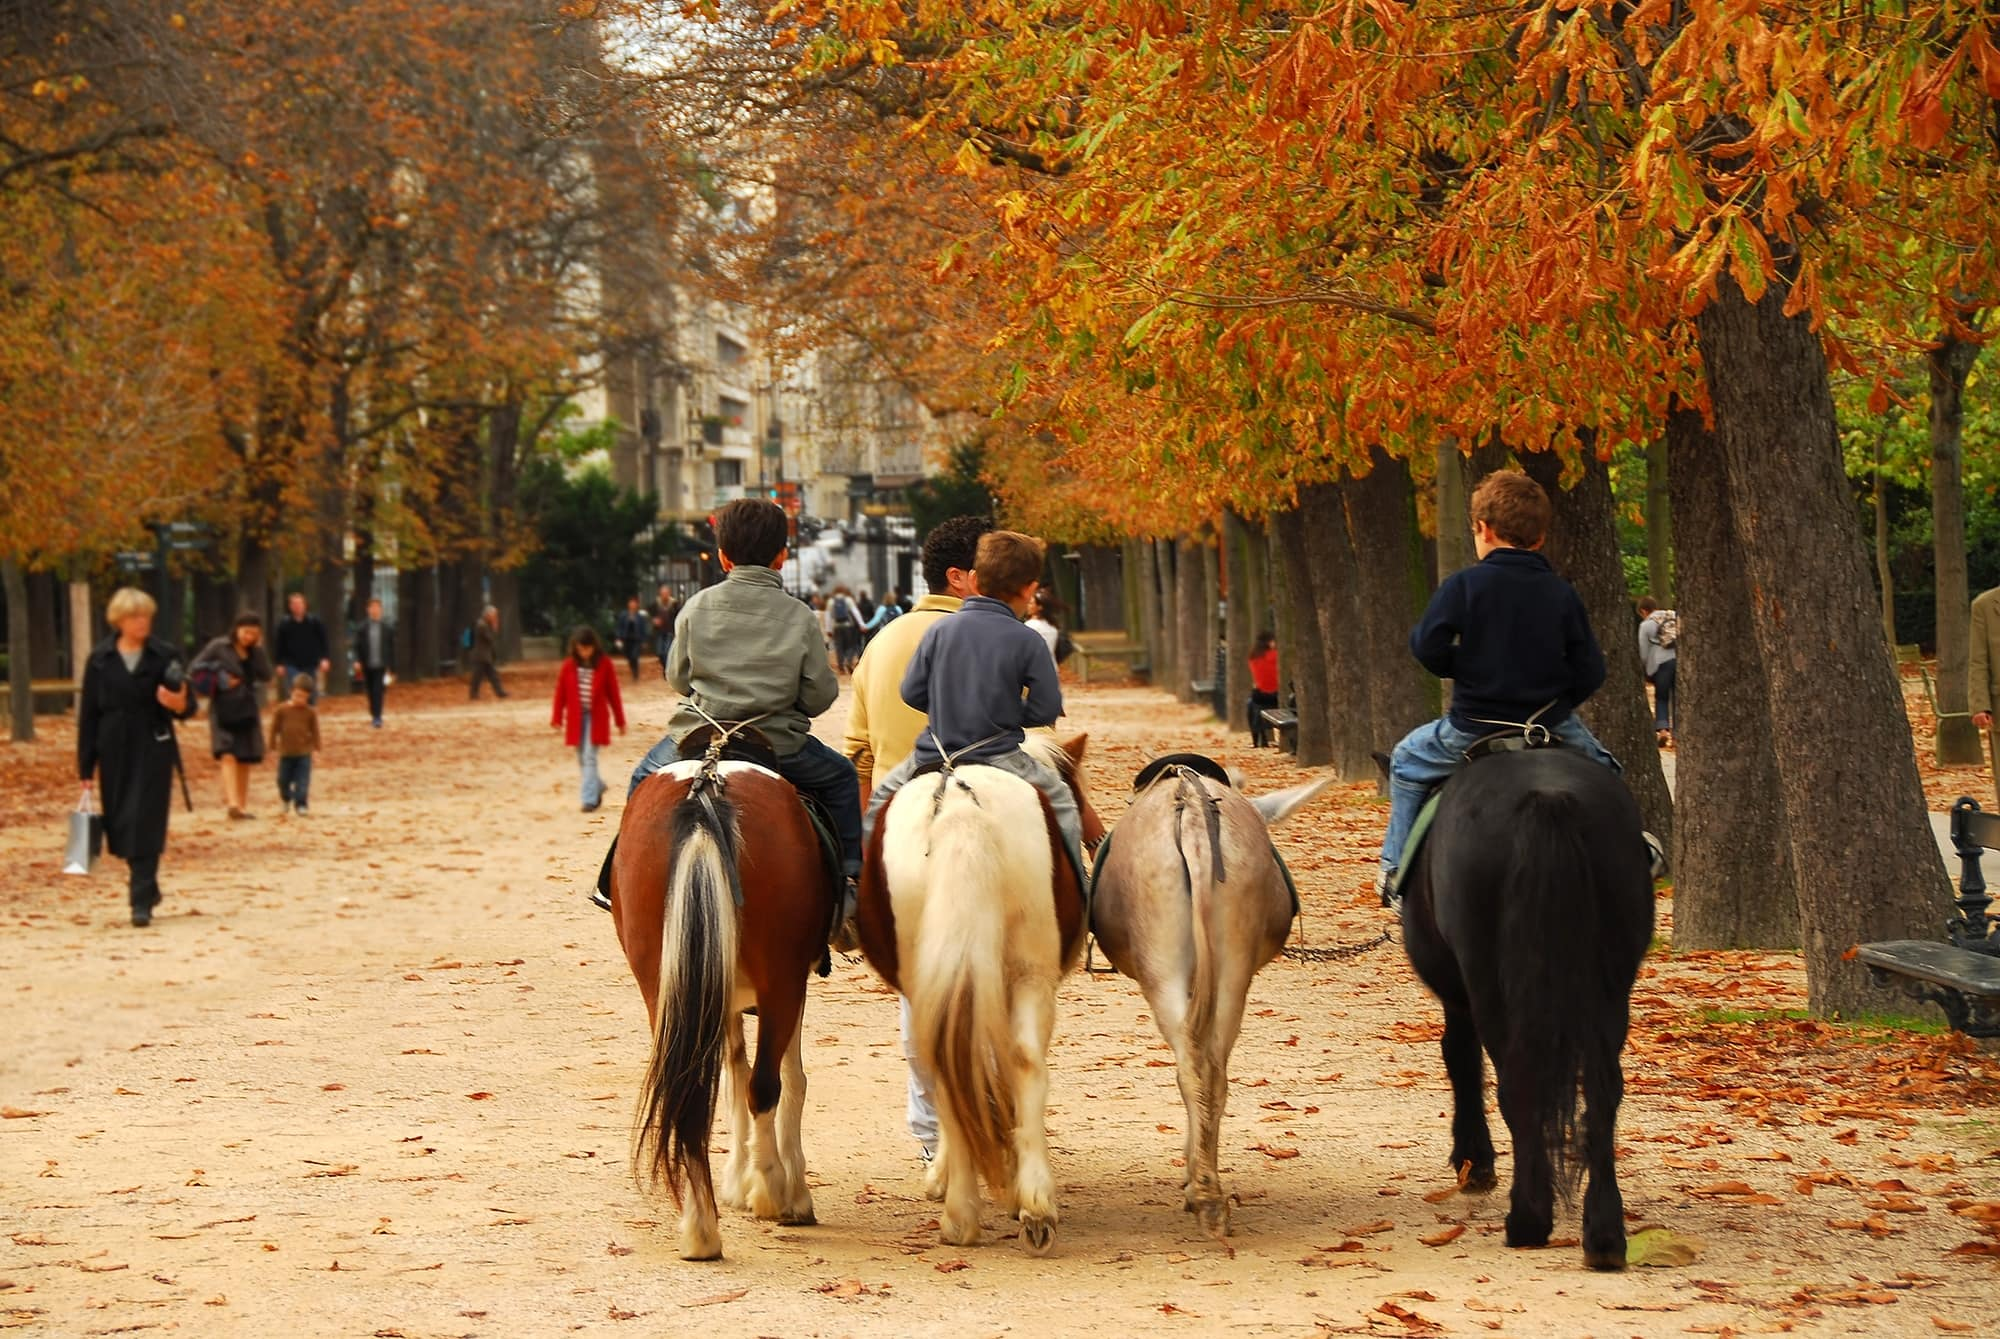 Kids can ride ponies at Jardin du Luxembourg